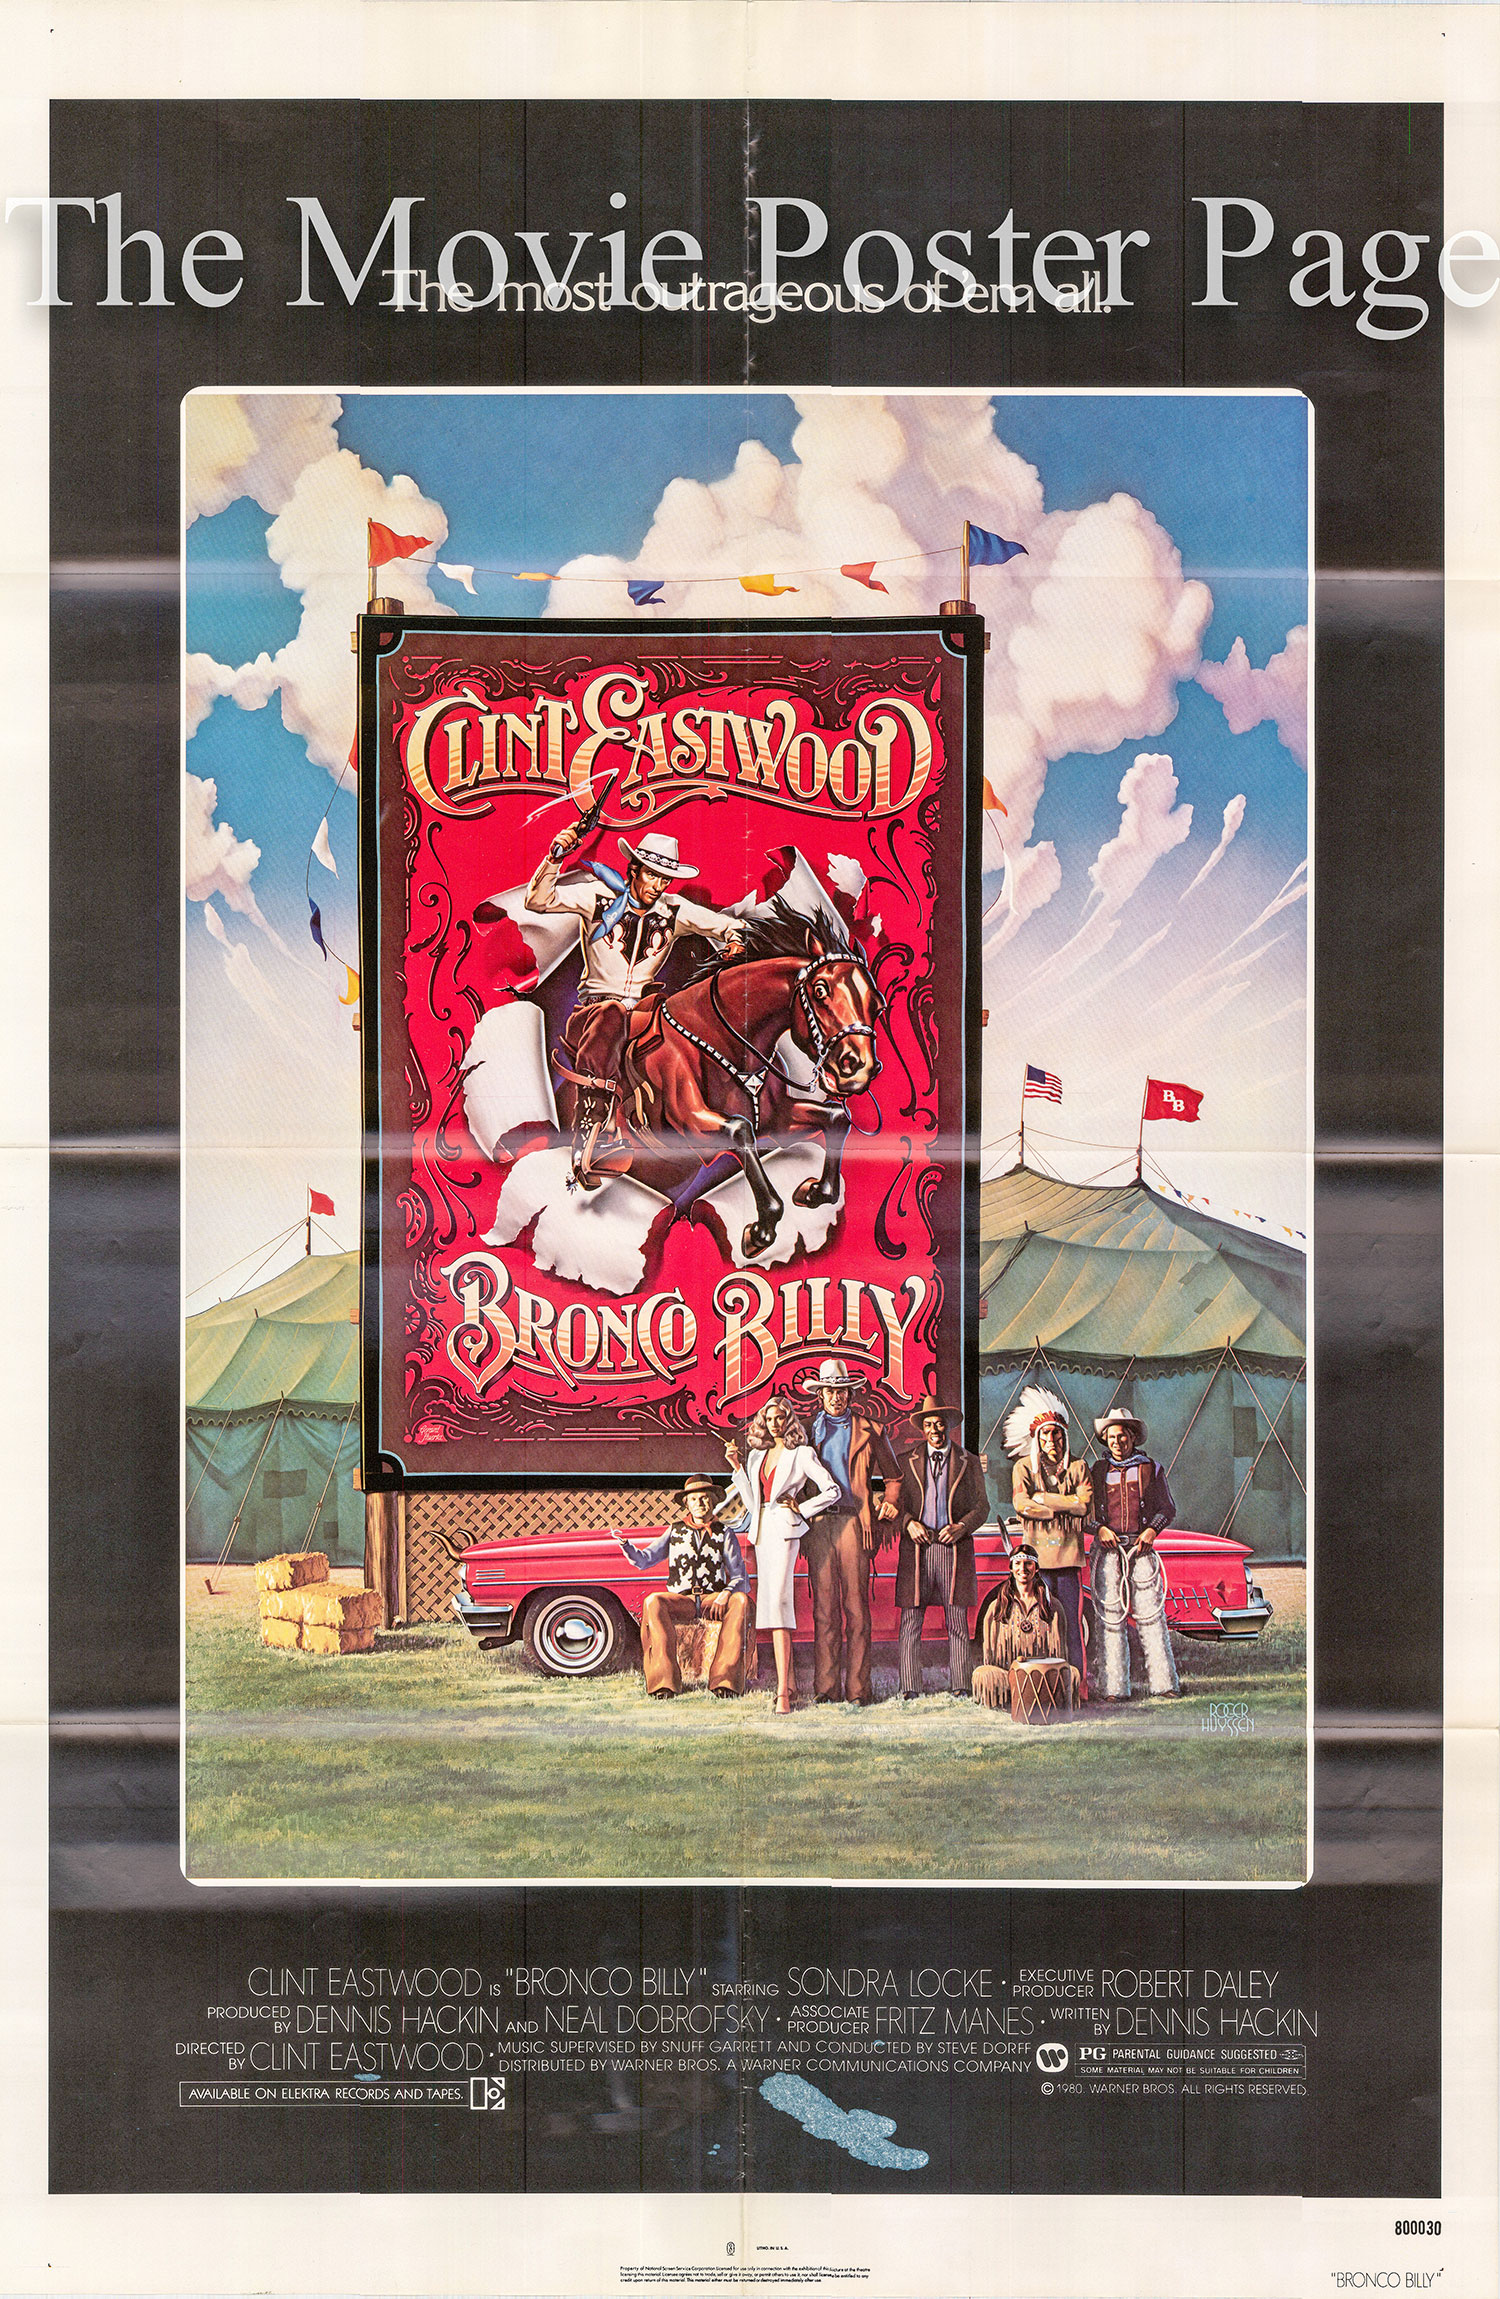 Pictured is a US one-sheet poster for the 1980 Clint Eastwood film Bronco Billy starring Clint Eastwood and Bronco Billy.